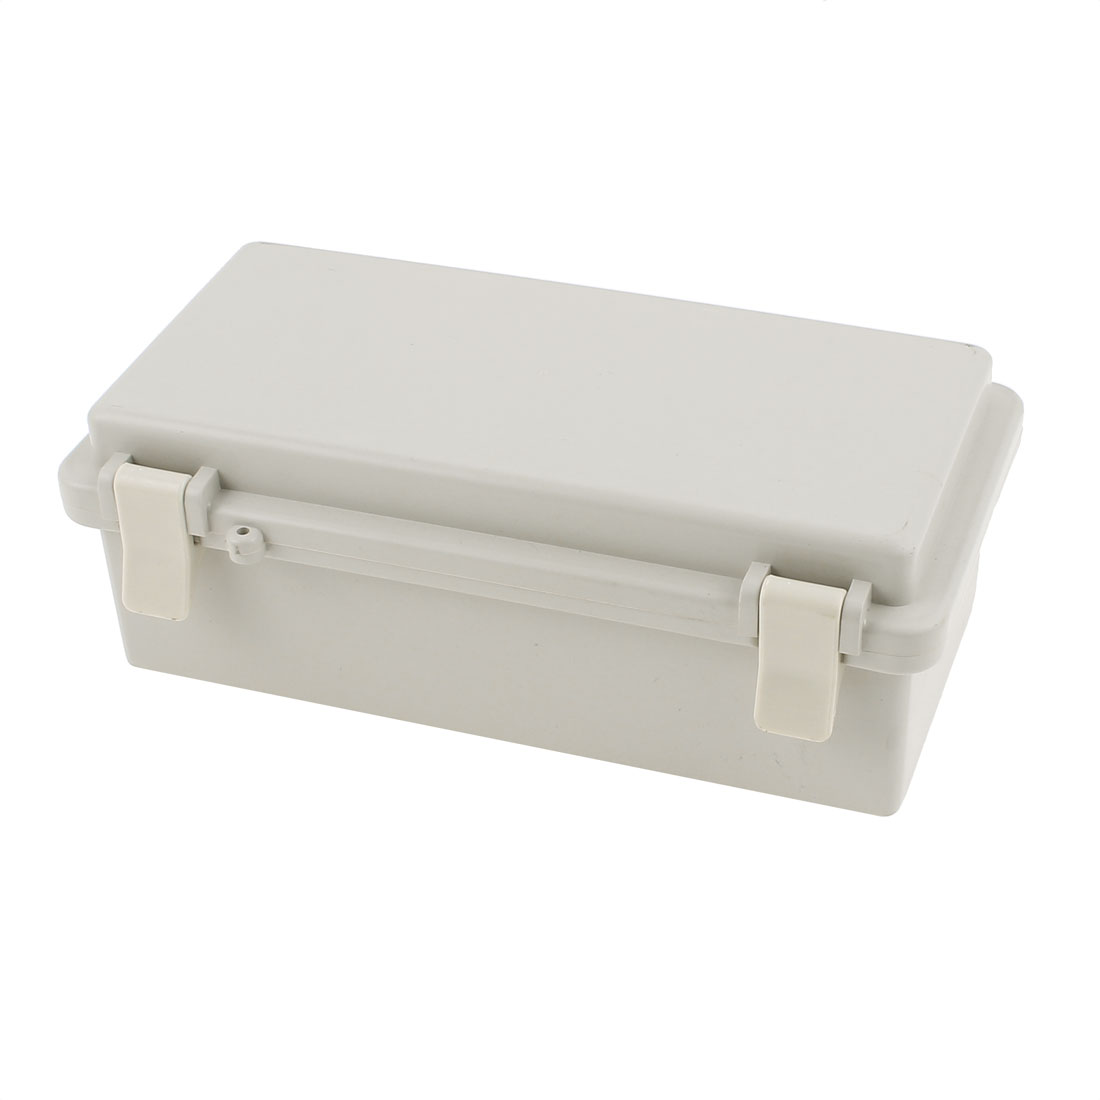 200 x 100 x 72mm Dustproof IP65 Junction Box Clamshell Sealed Instrument Shell